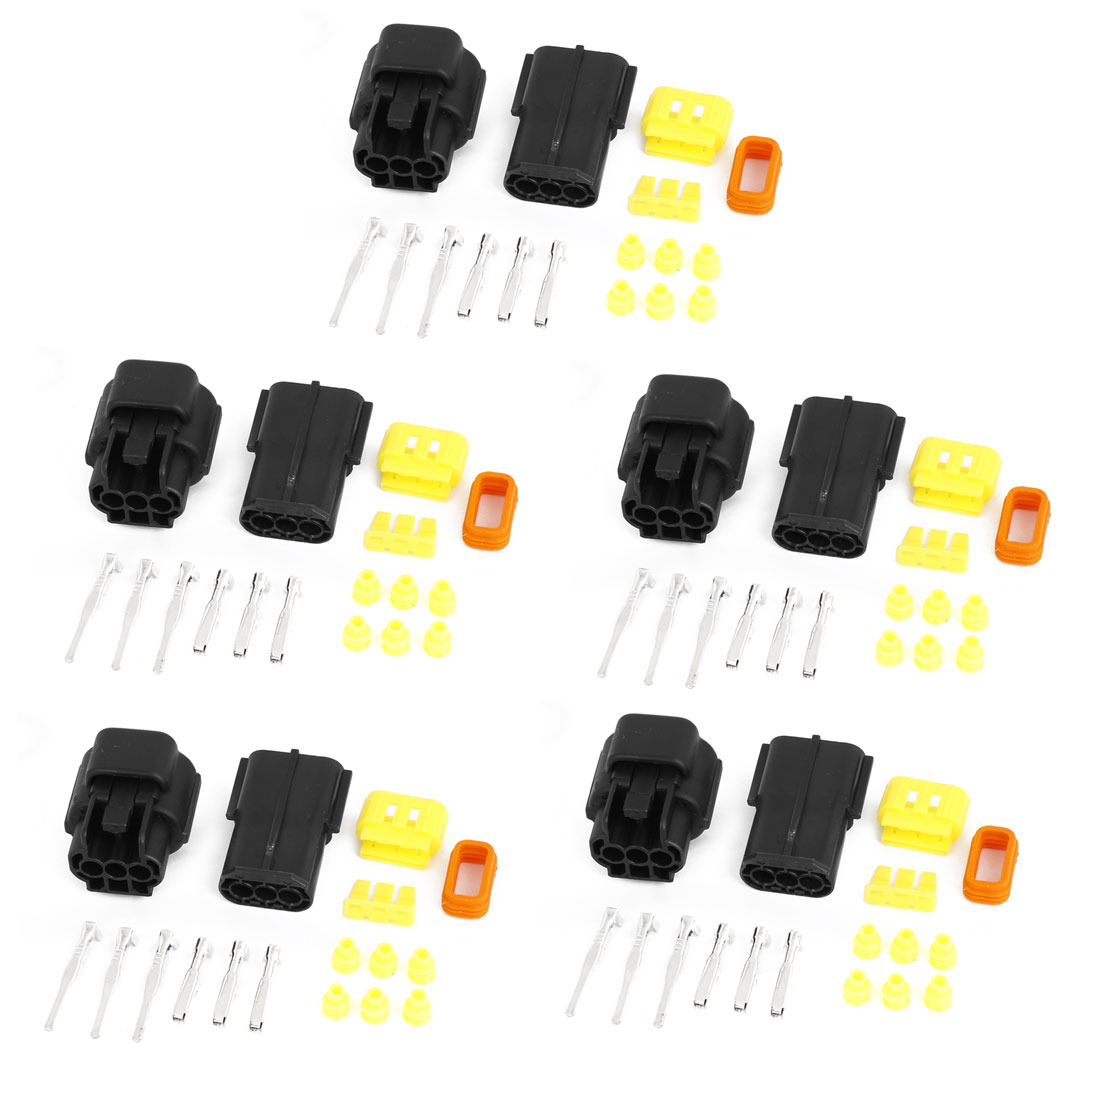 Wire Connector sets 3 Terminals Waterproof Electrical Car Motorcycle HID 5 Kits